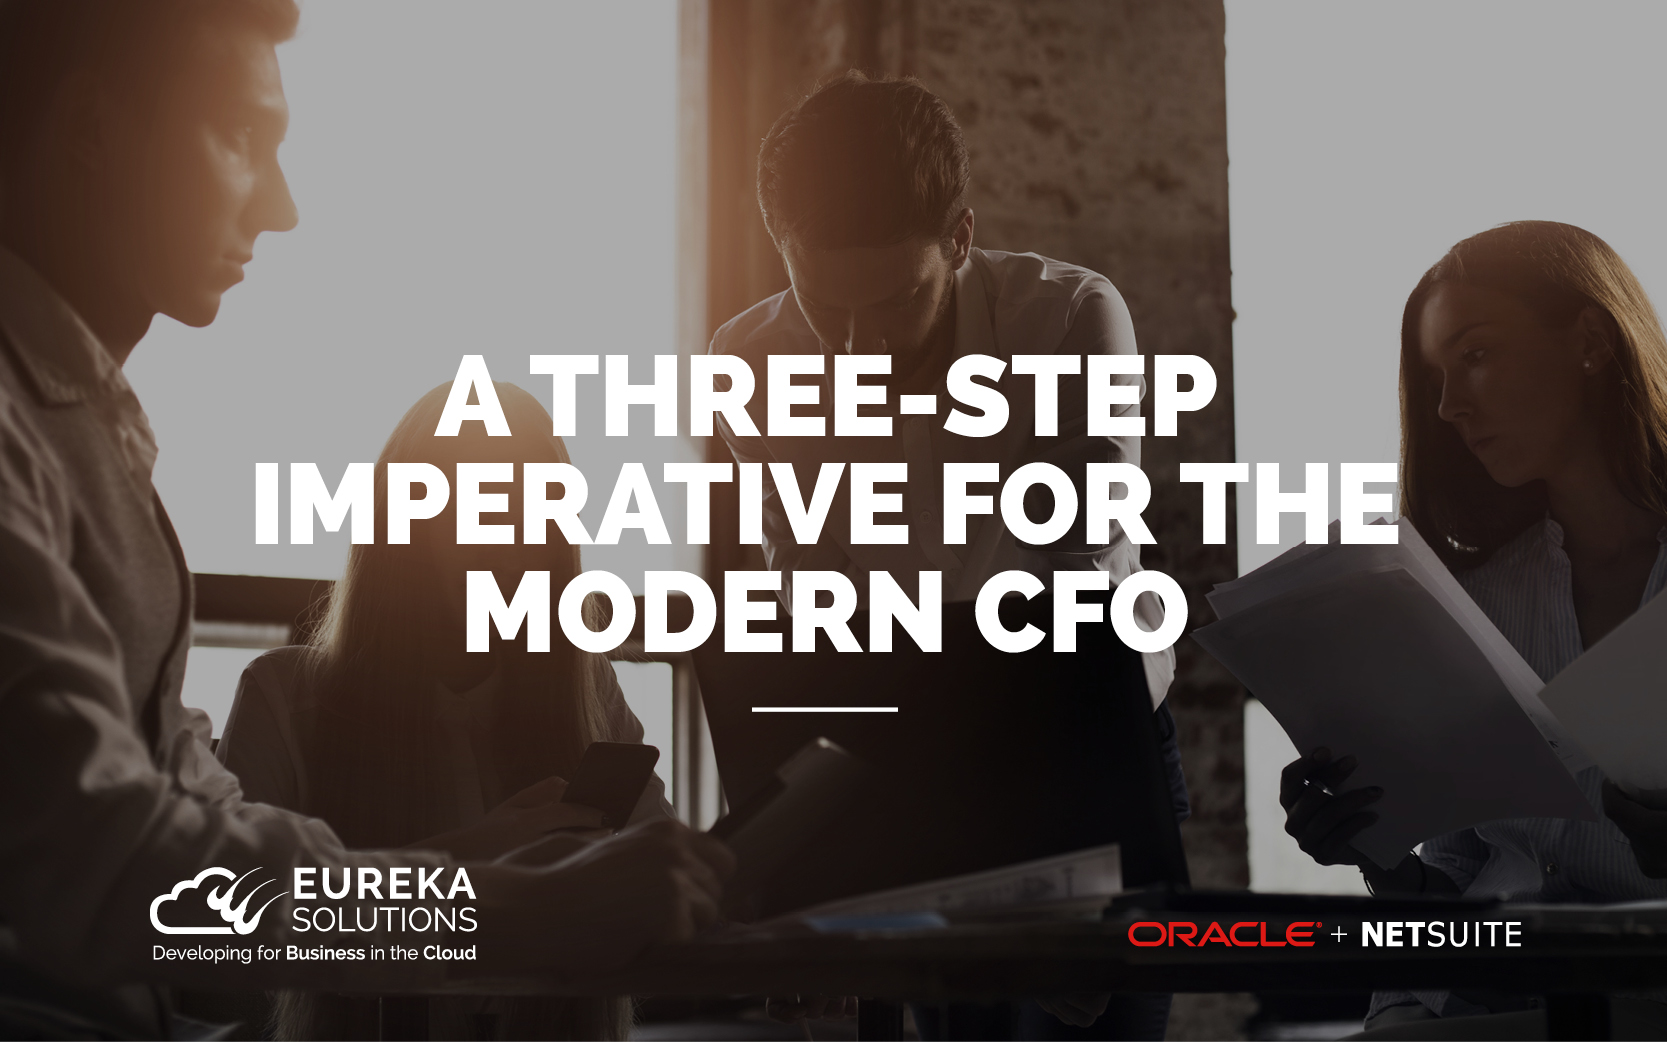 Lead, Transform, Operate: A 3-Step Imperative for the Modern CFO